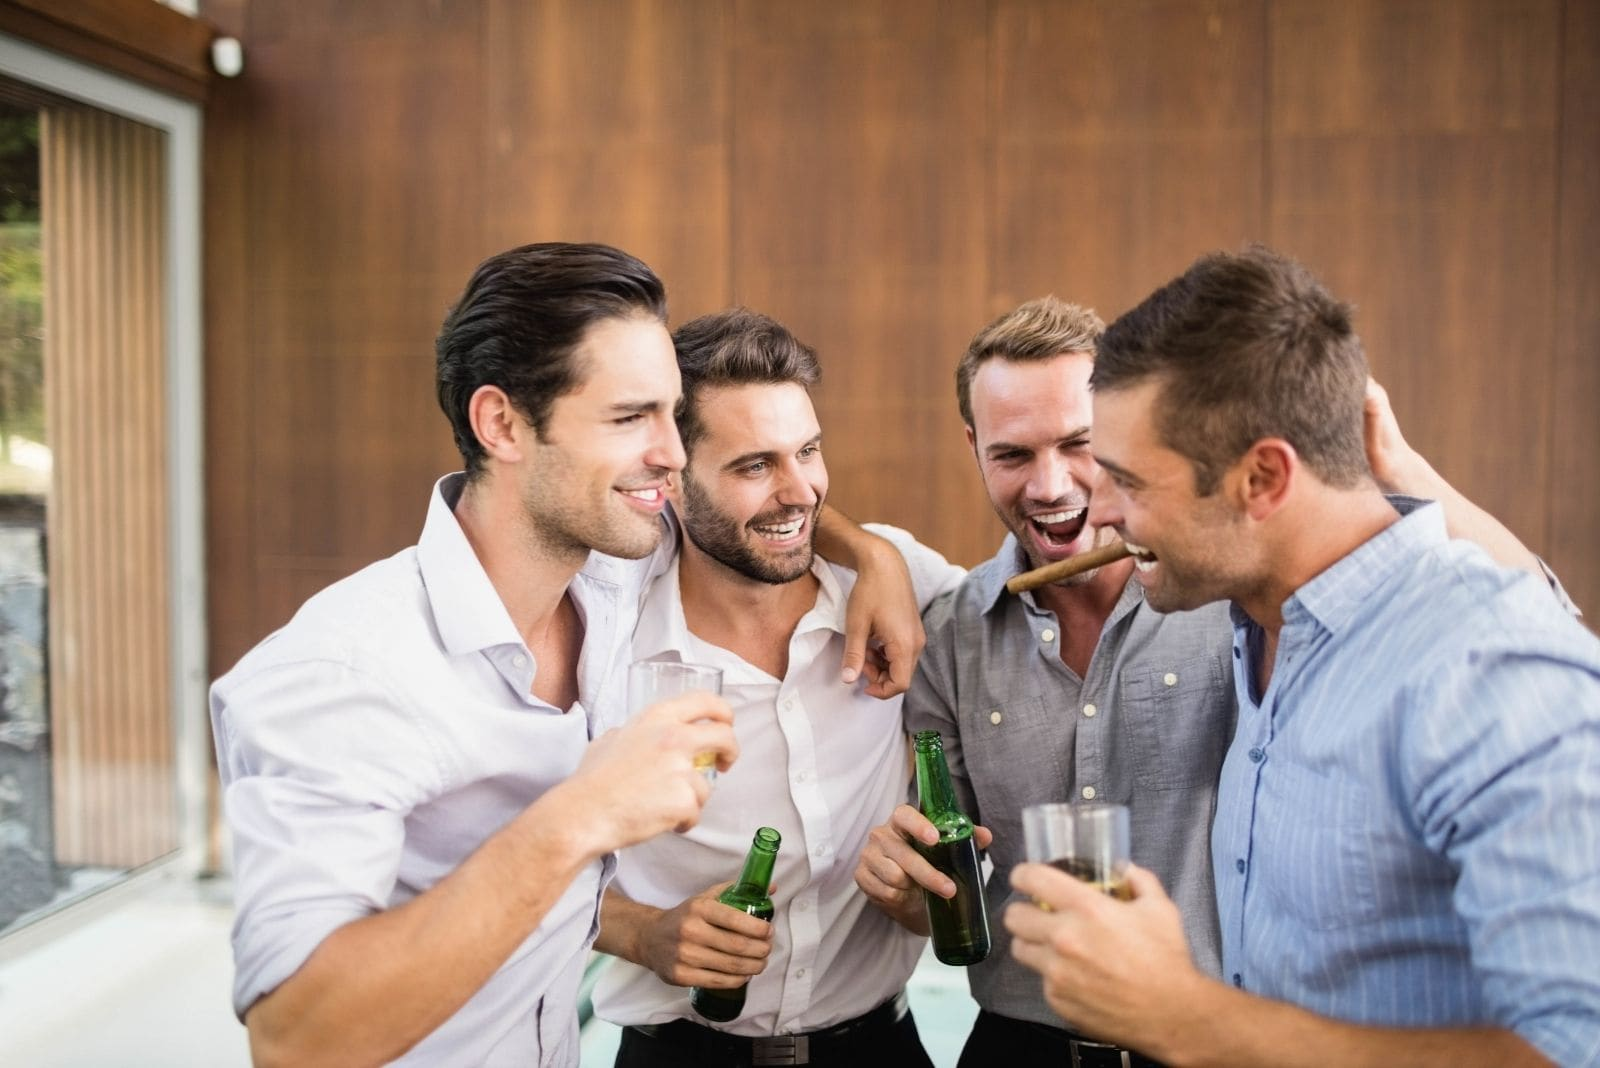 group of young men enjoying drinking inside a room in a building